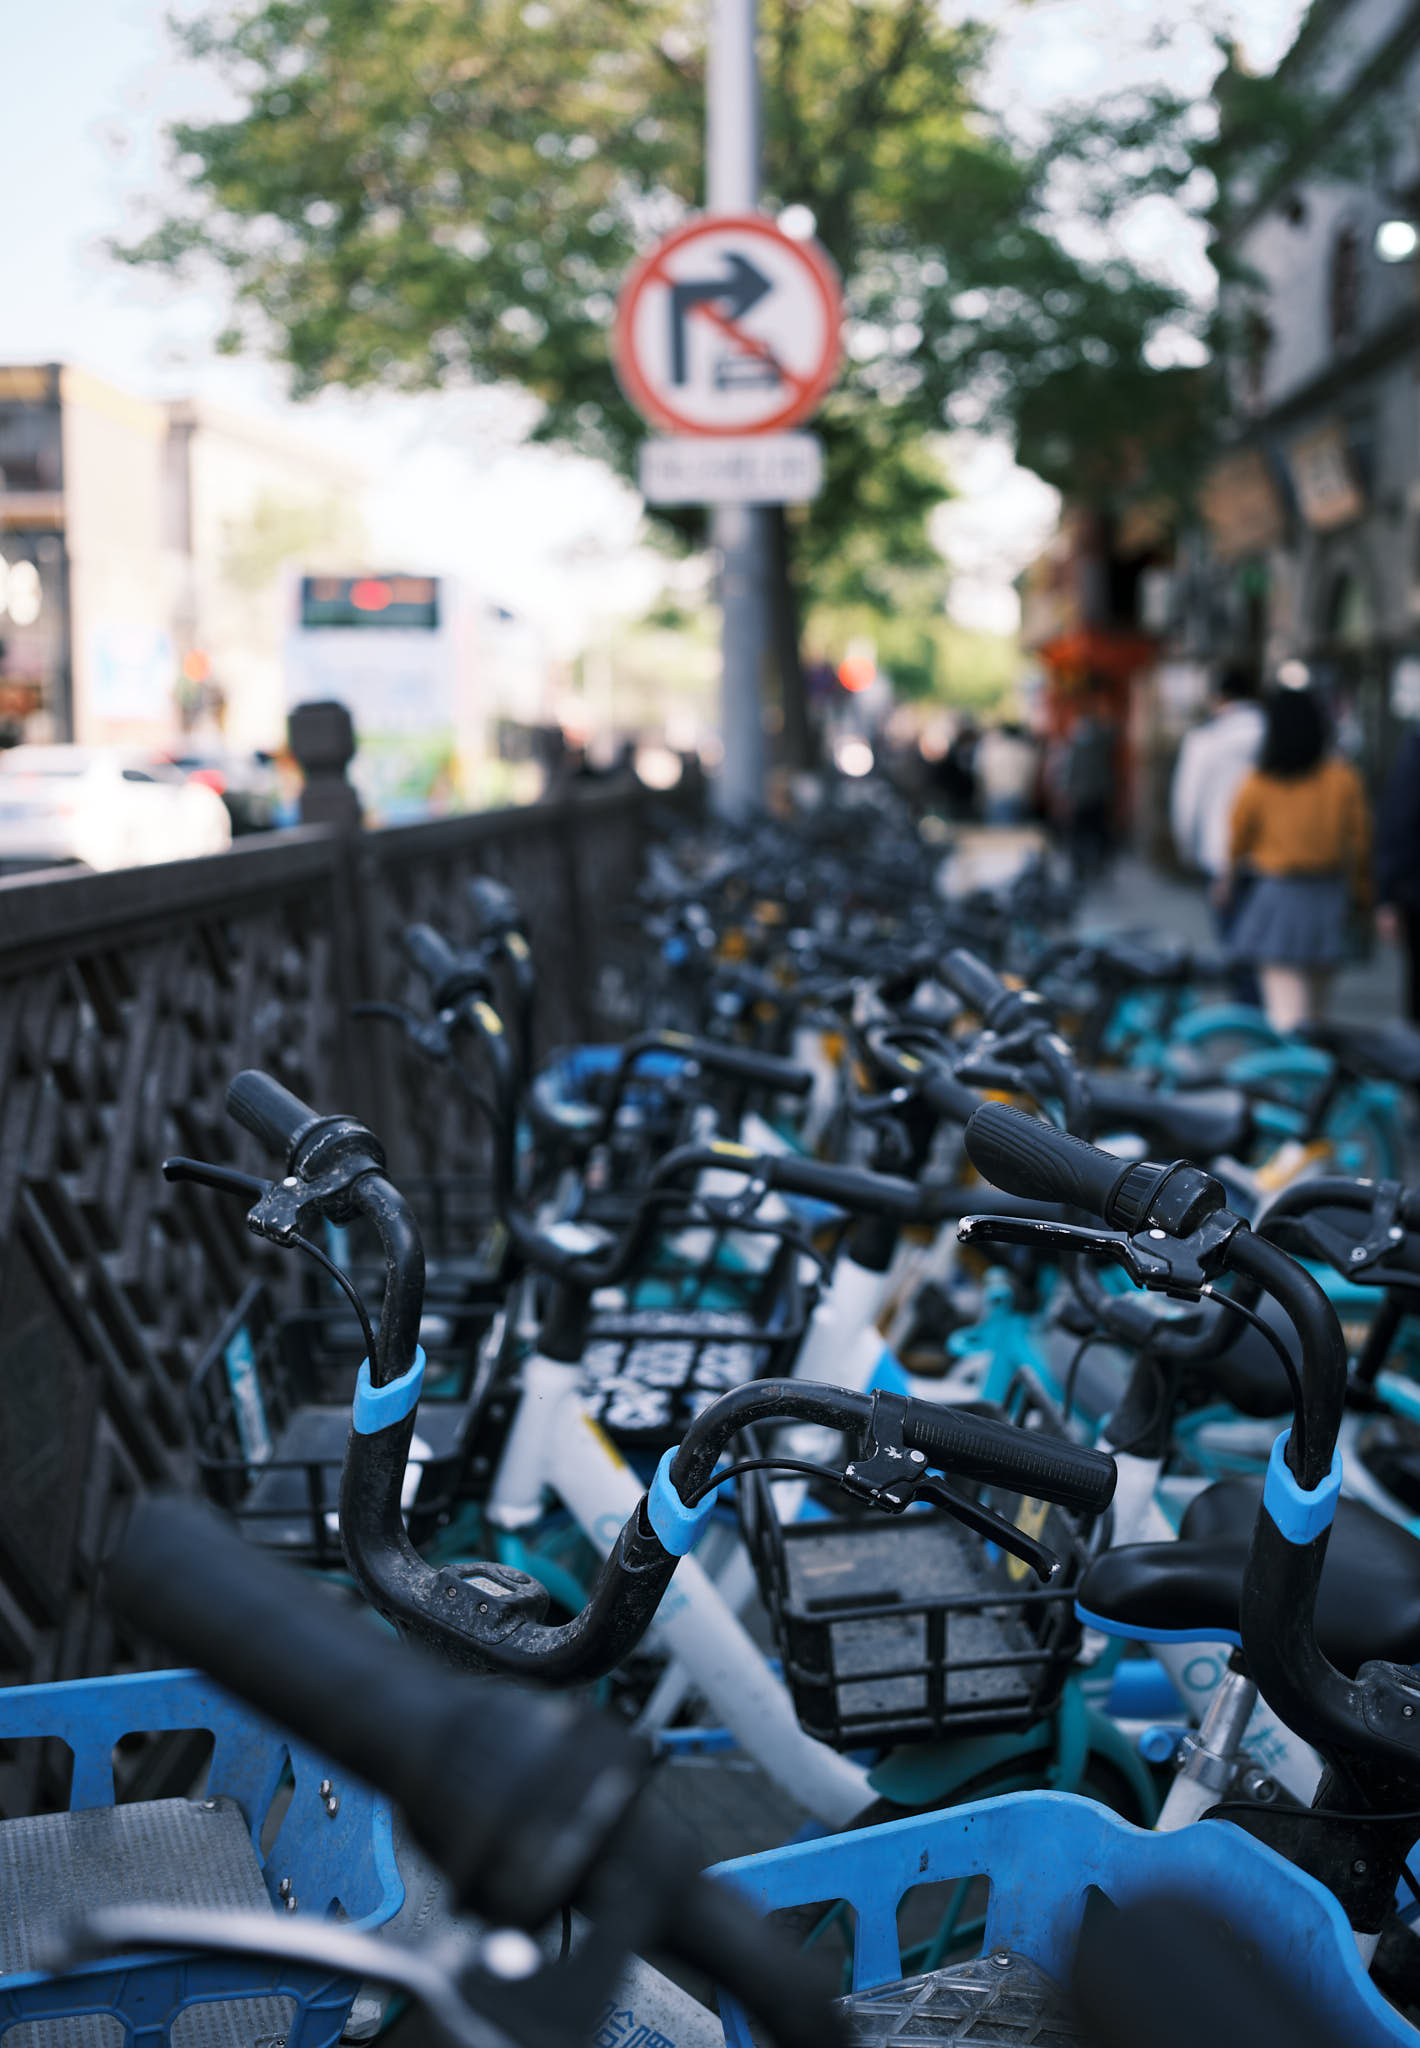 Shared rental bicycles litter the street in Qianmen